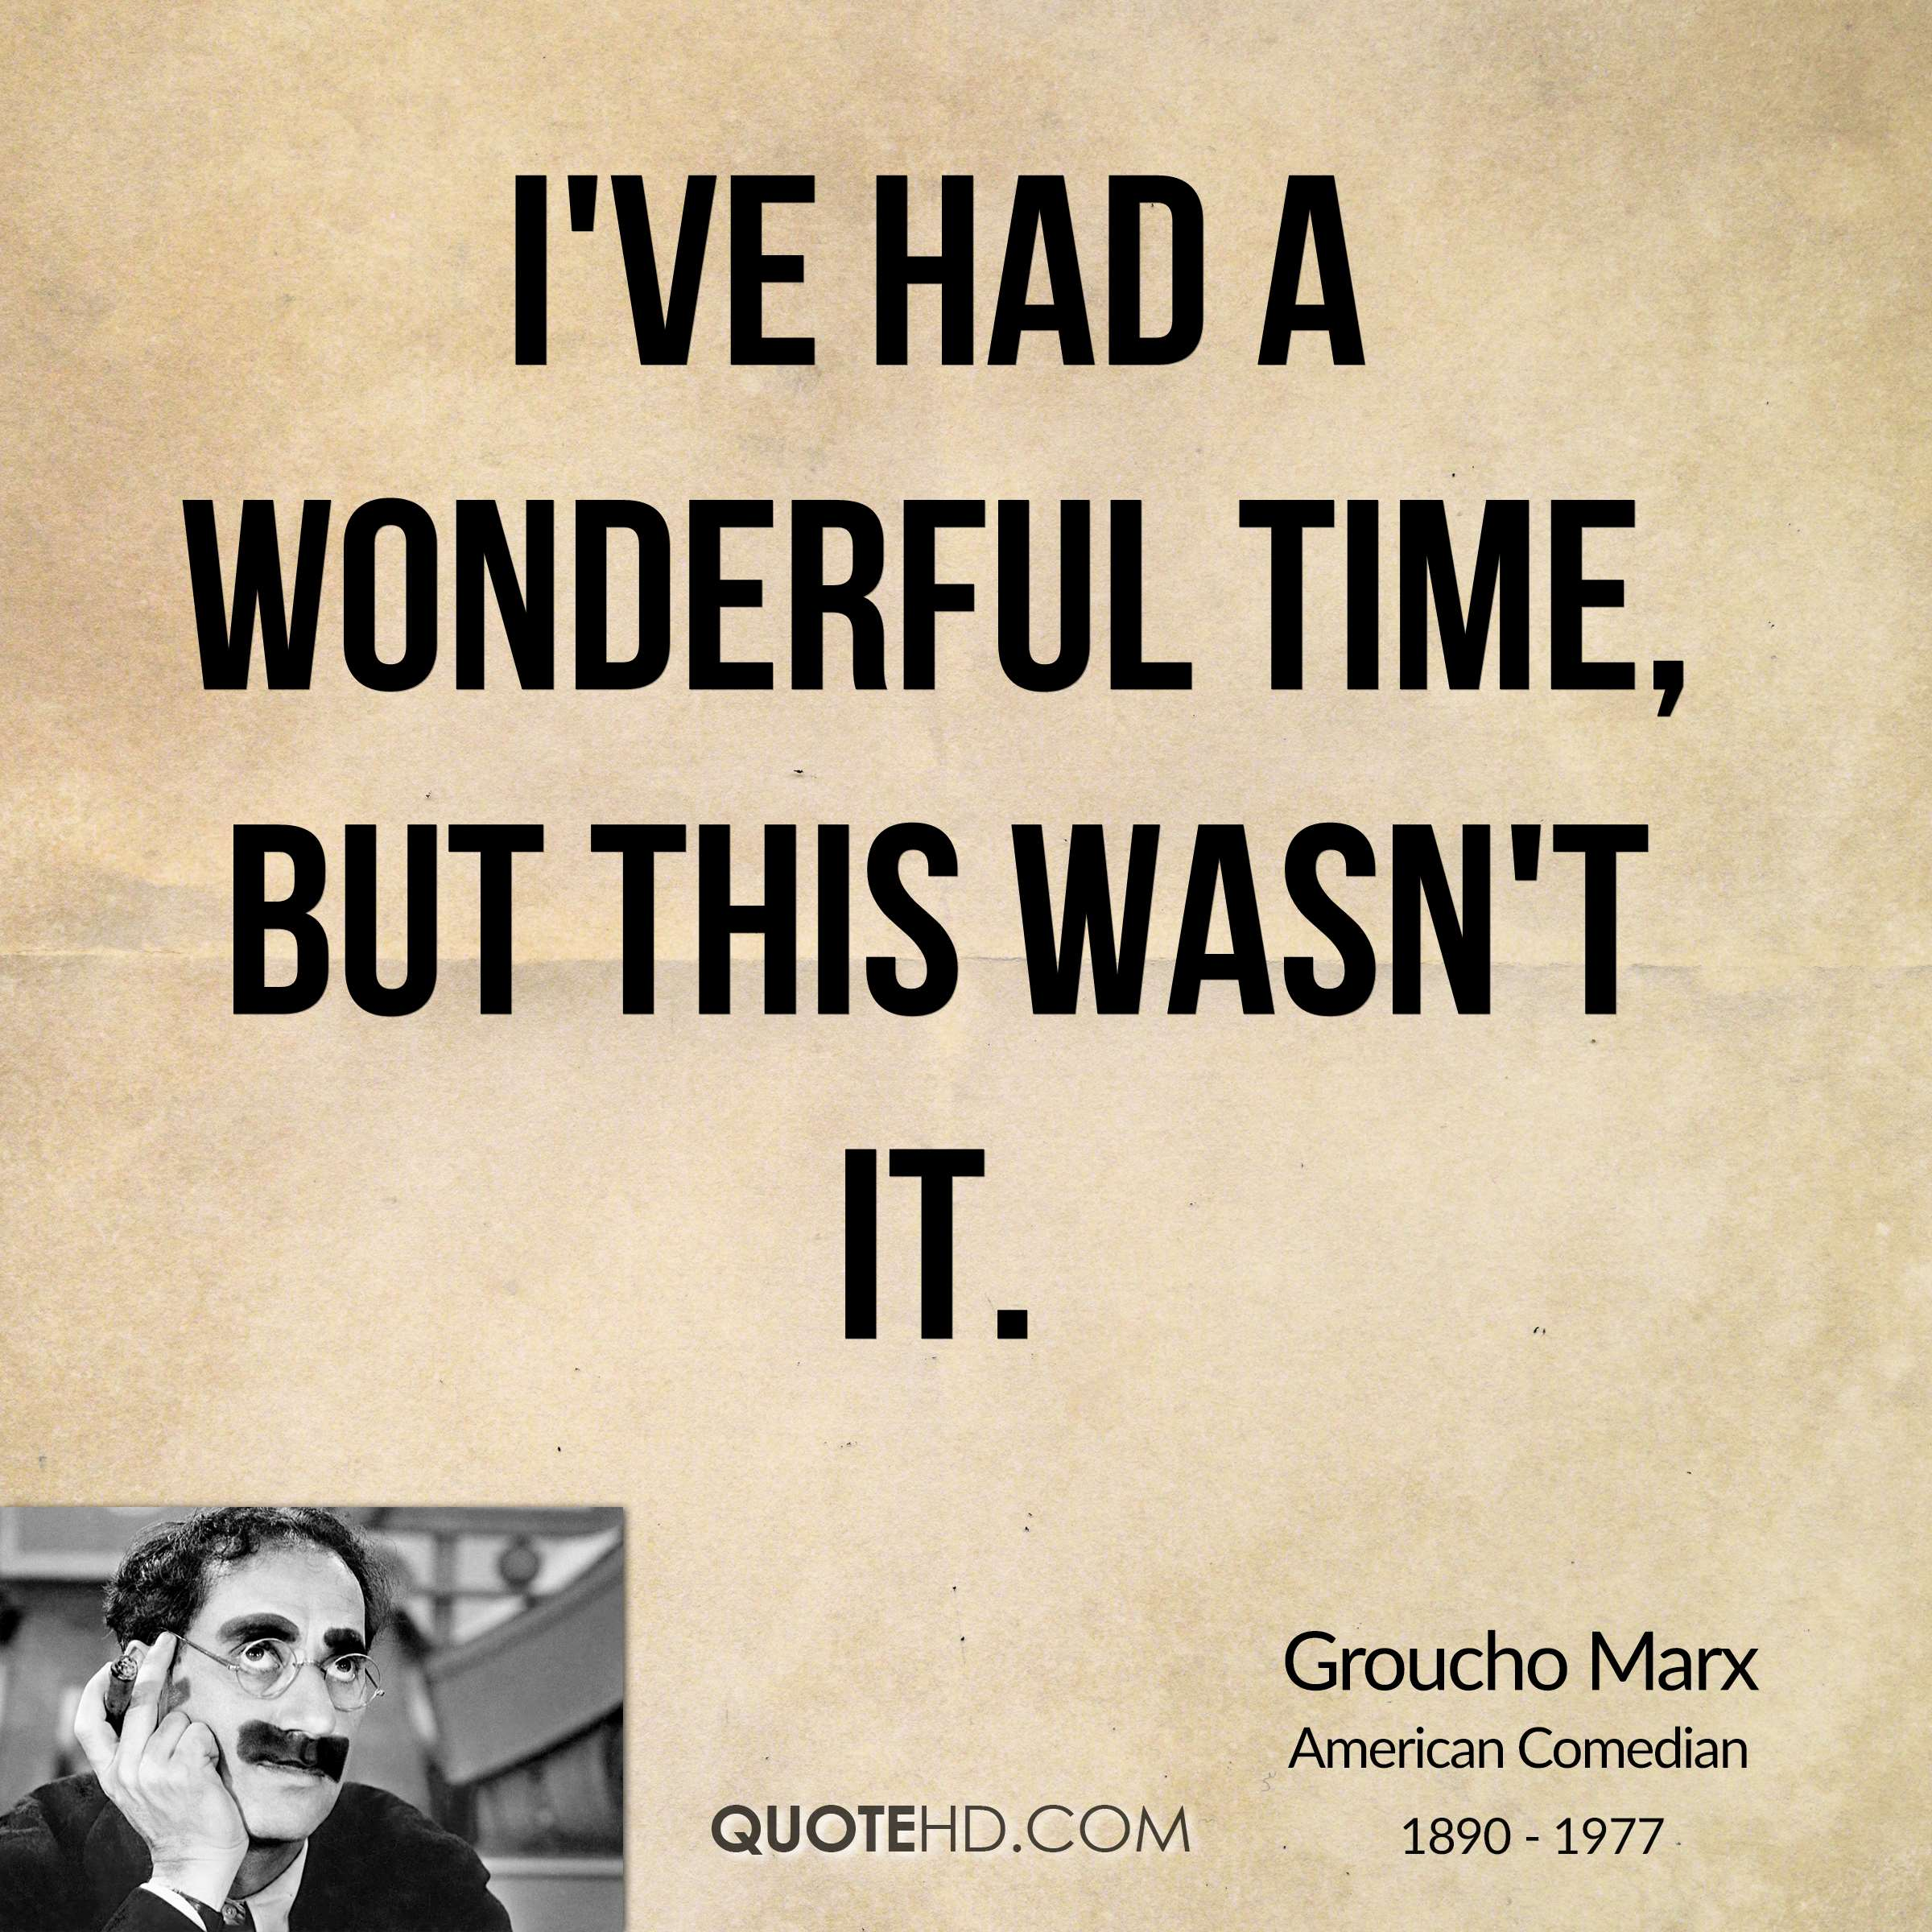 It S A Wonderful Life Quote In Book At End: Groucho Marx Quotes. QuotesGram